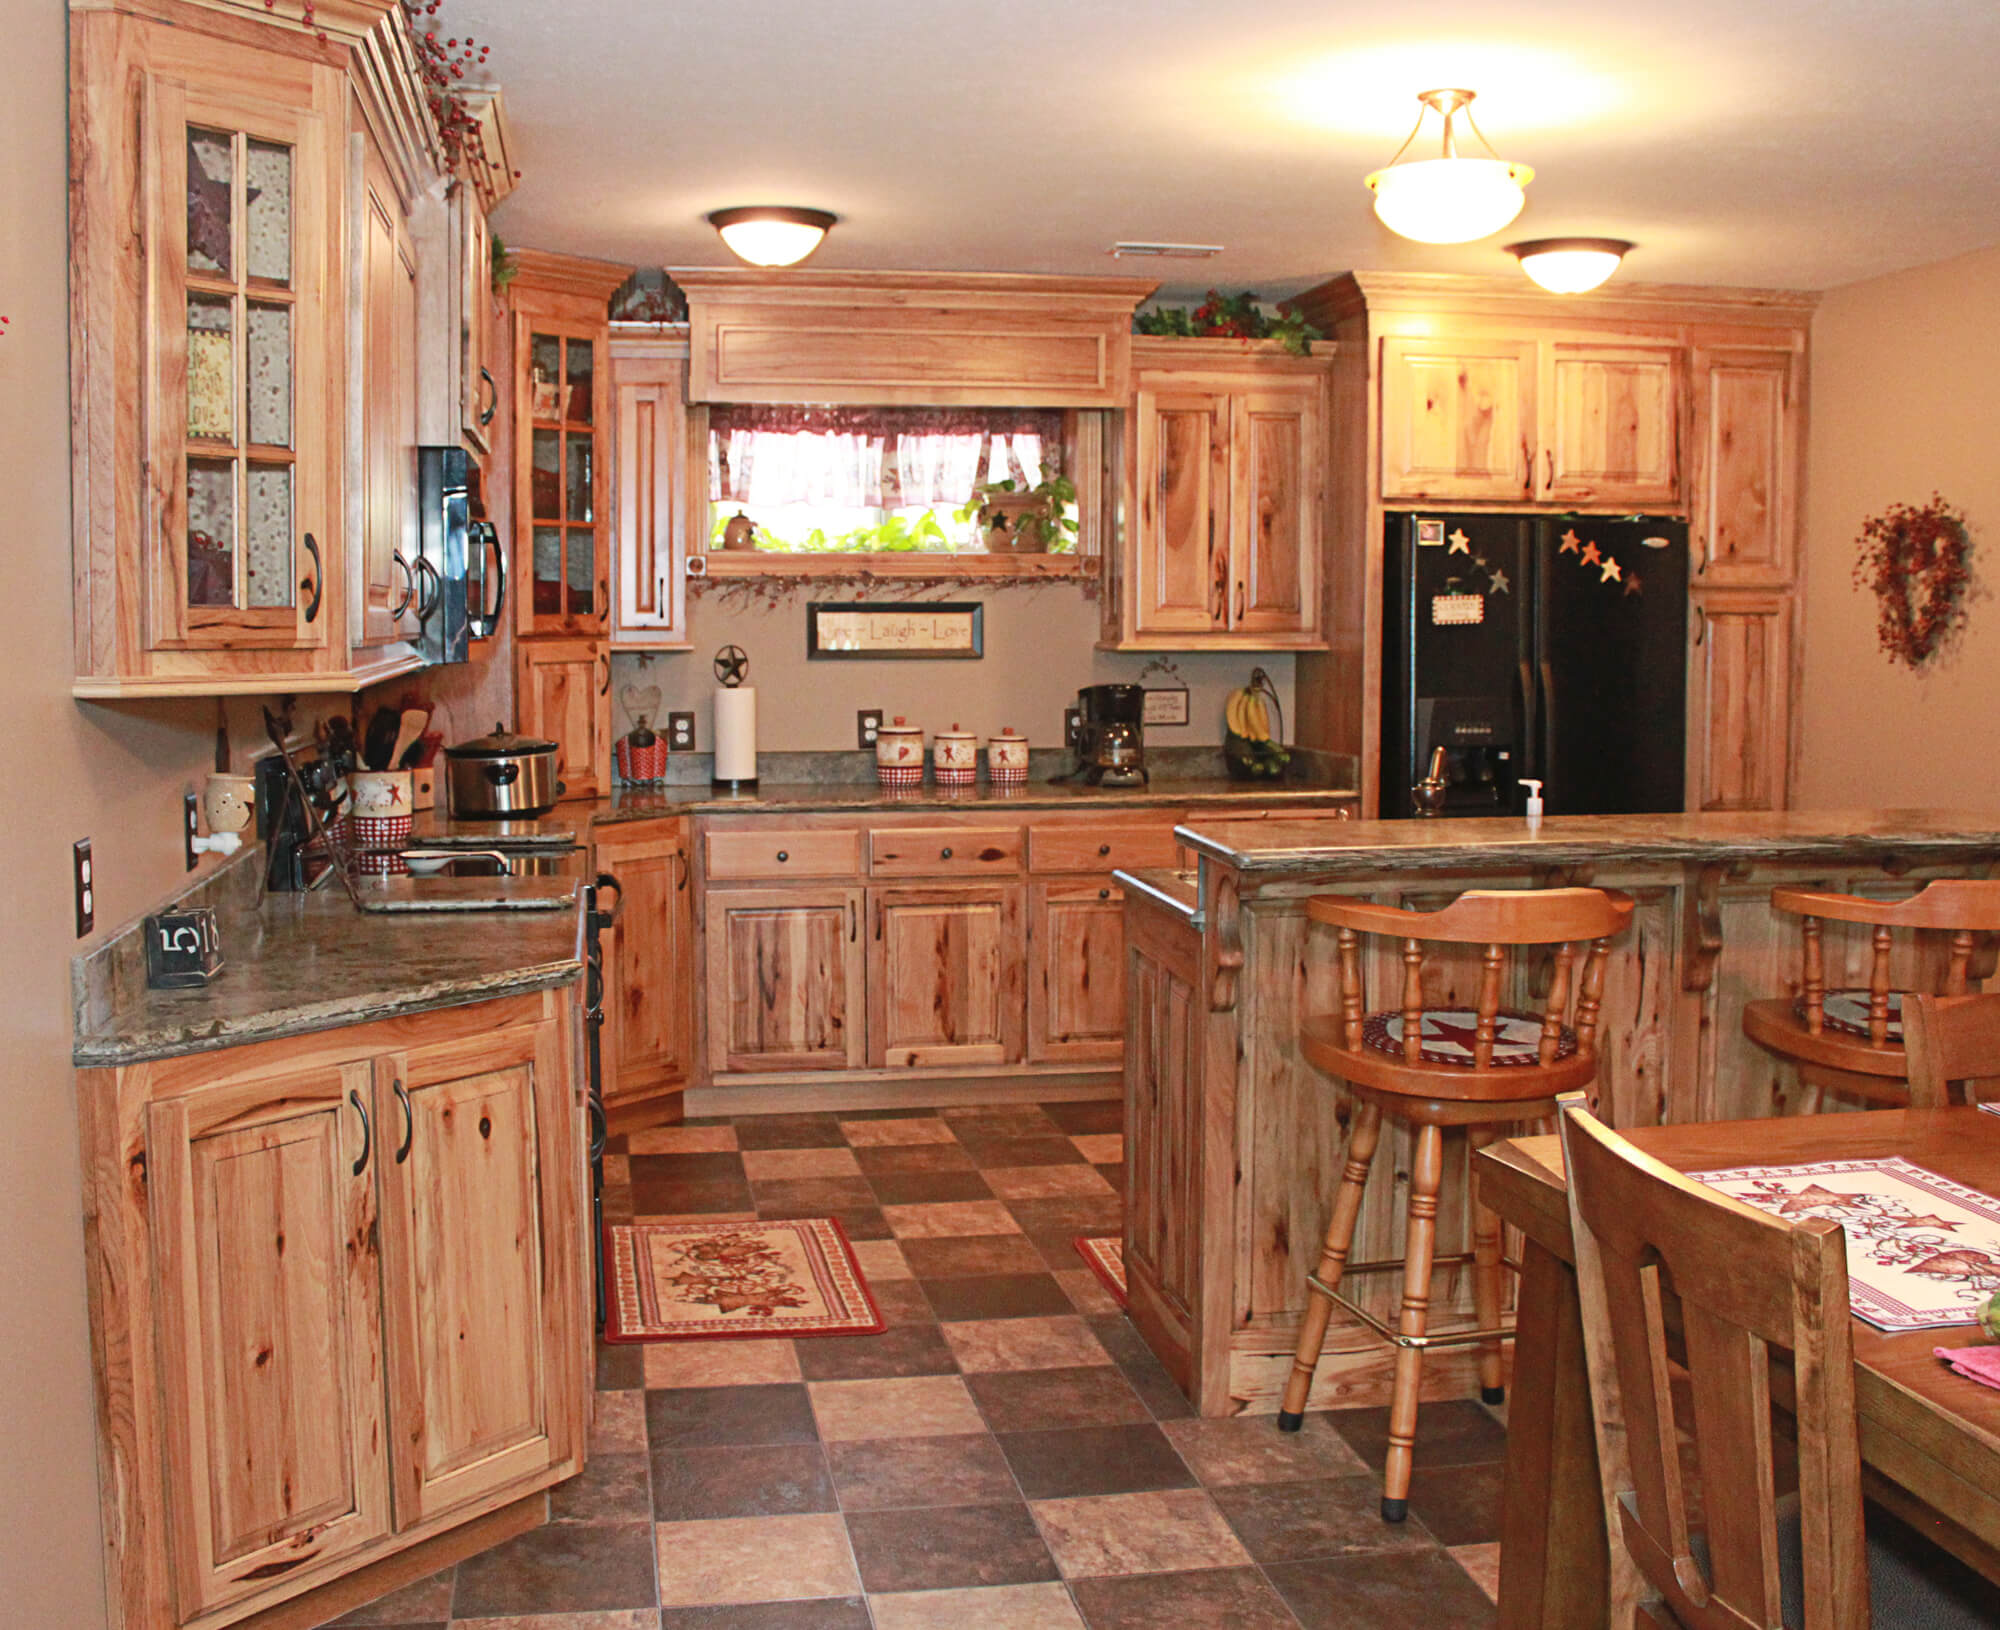 The cabinets plus rustic hickory kitchen cabinets for Rustic kitchen cabinets